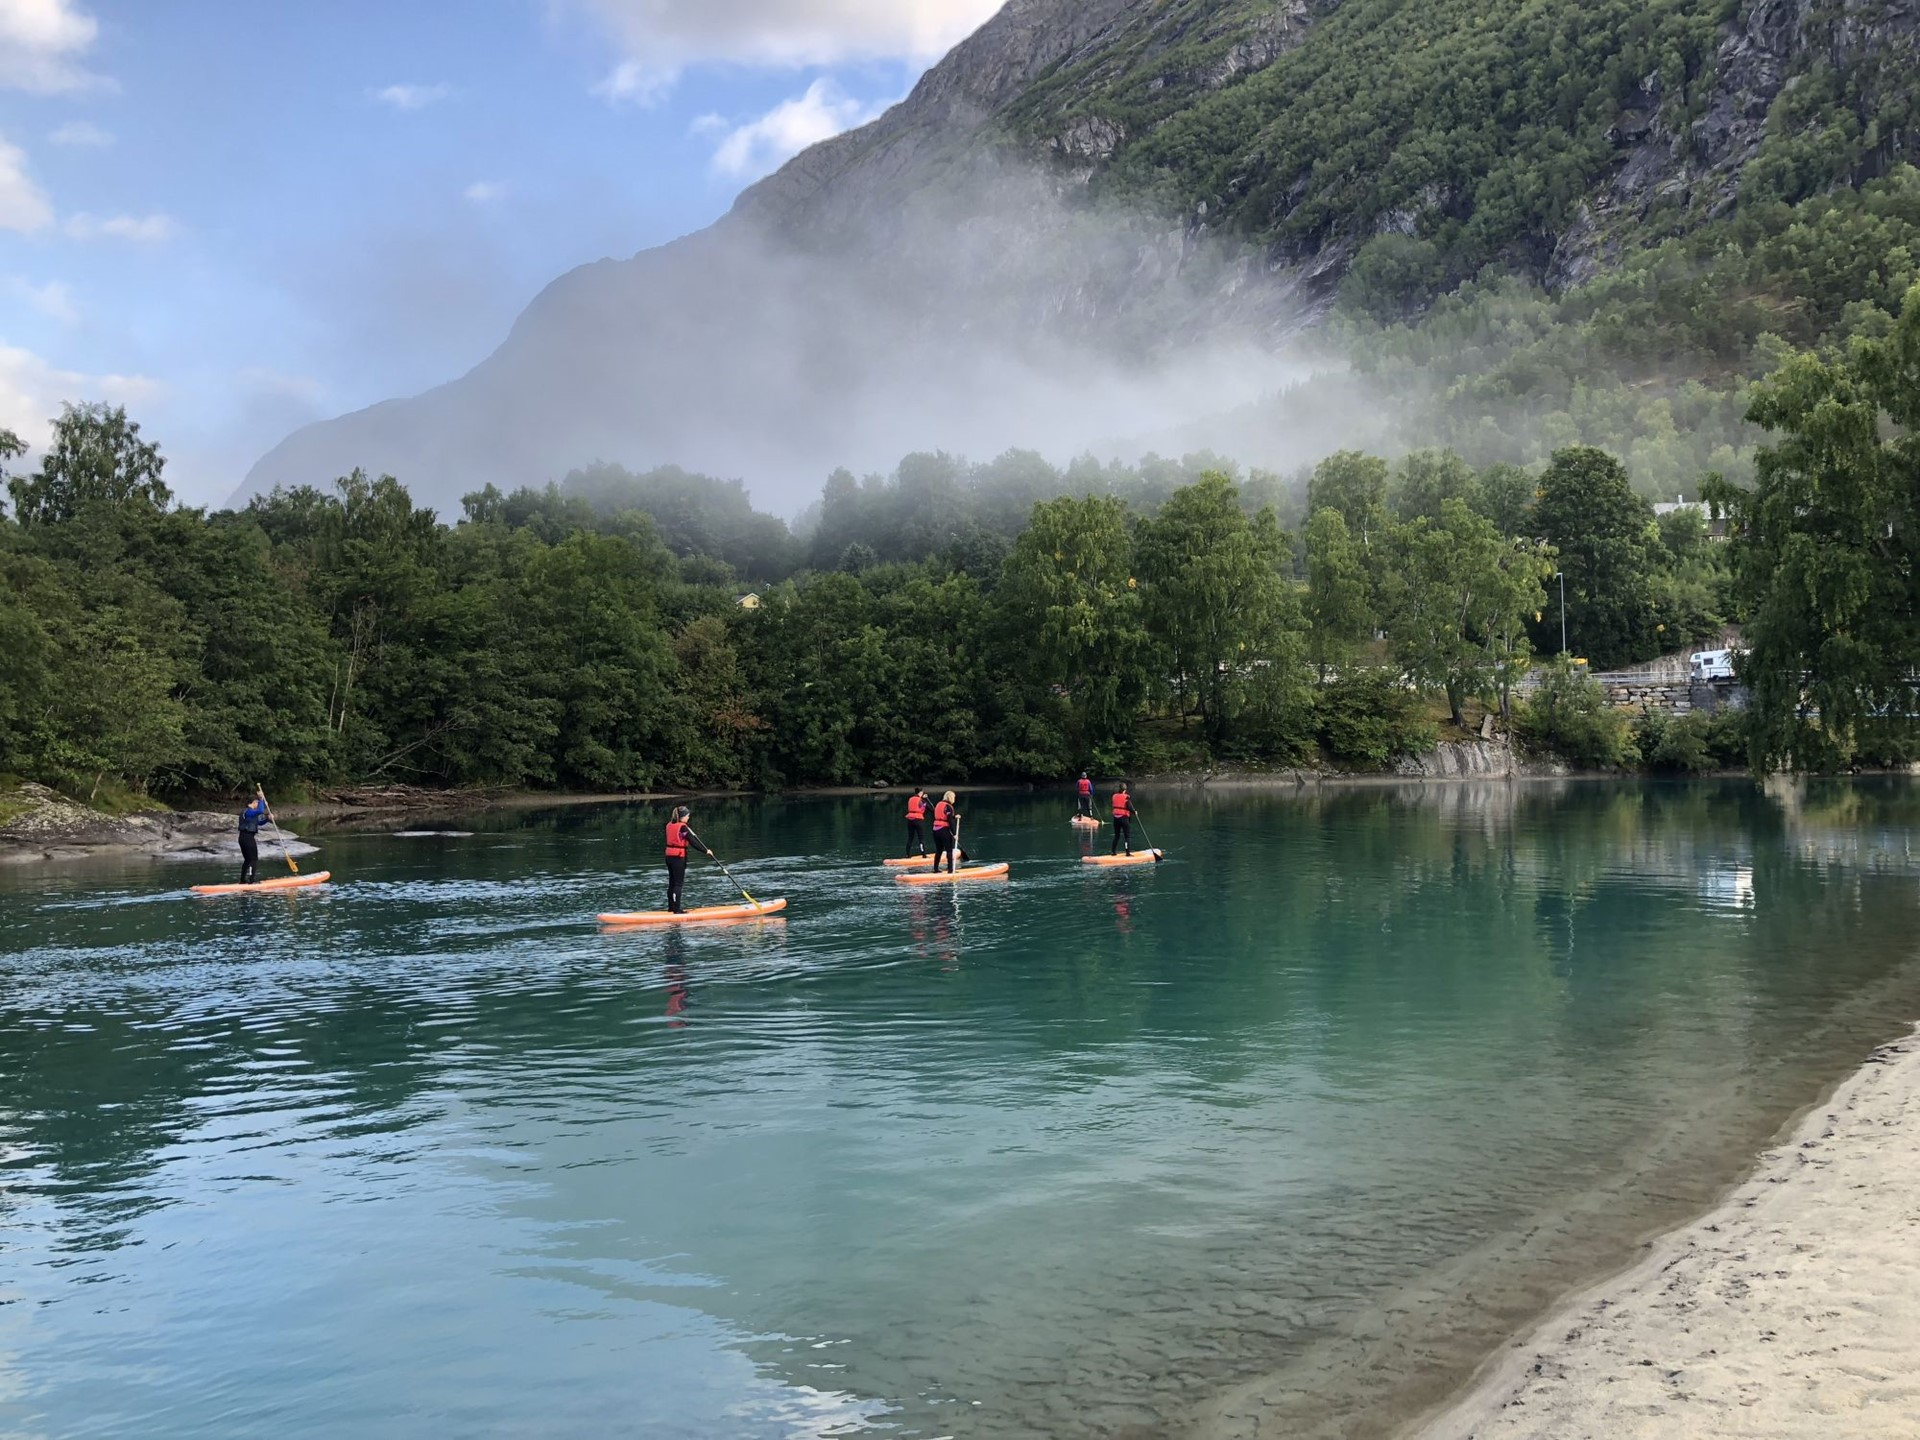 Paddleboard on the Istra River - Åndalsnes